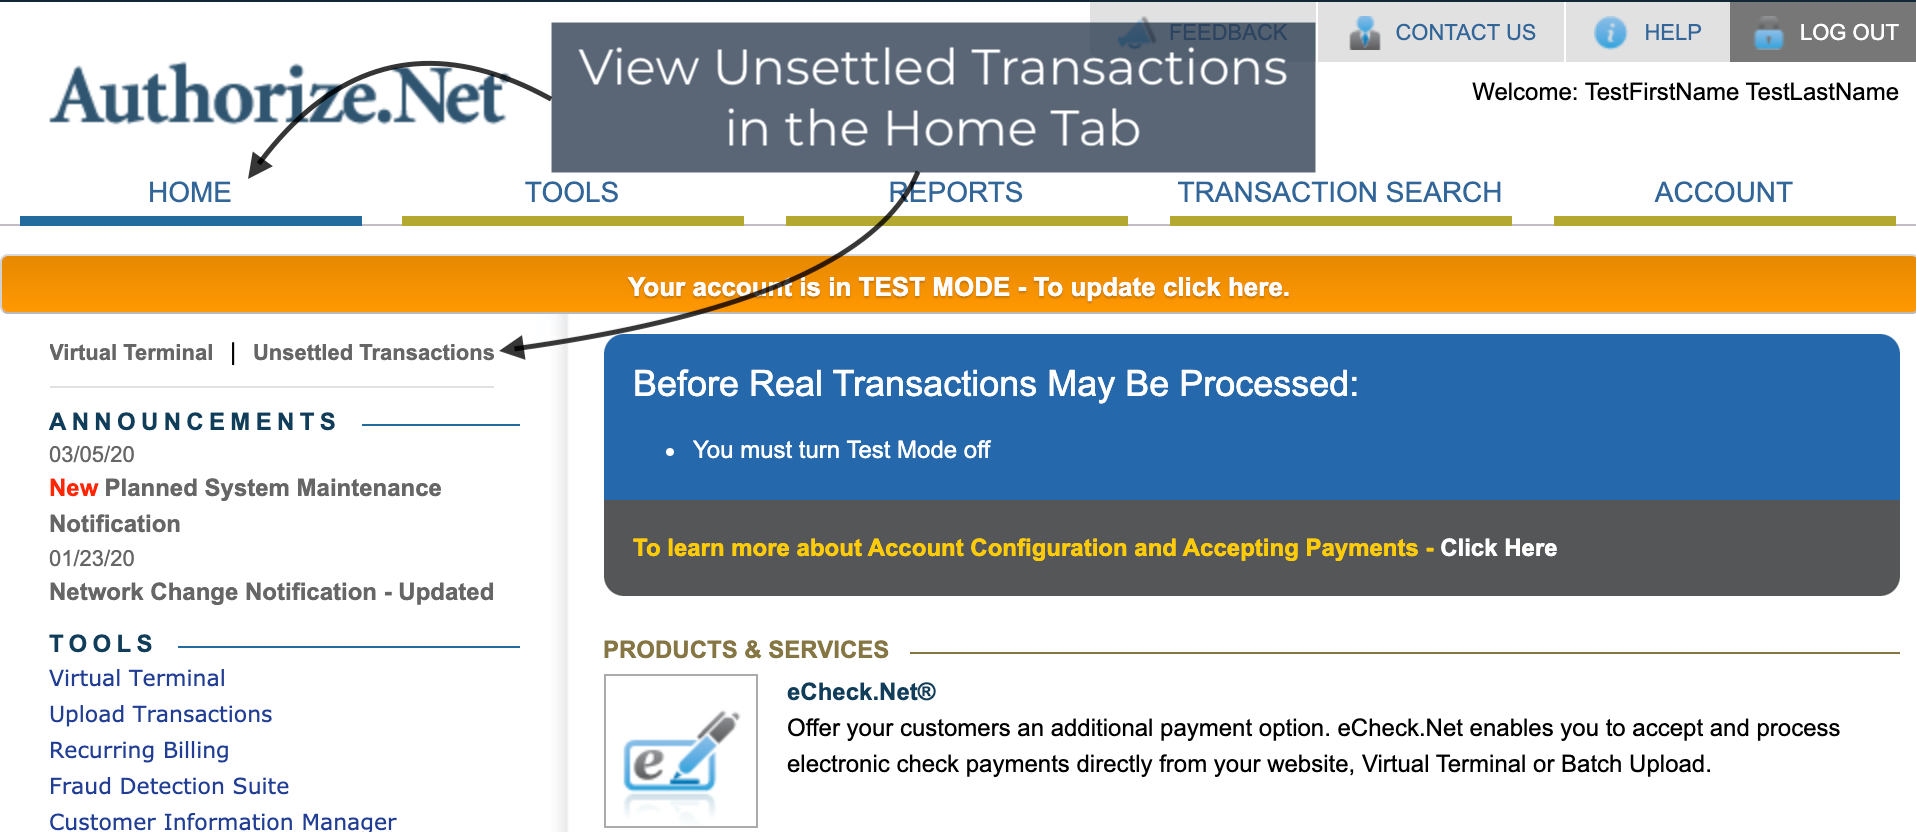 AuthNet Unsettled Transactions